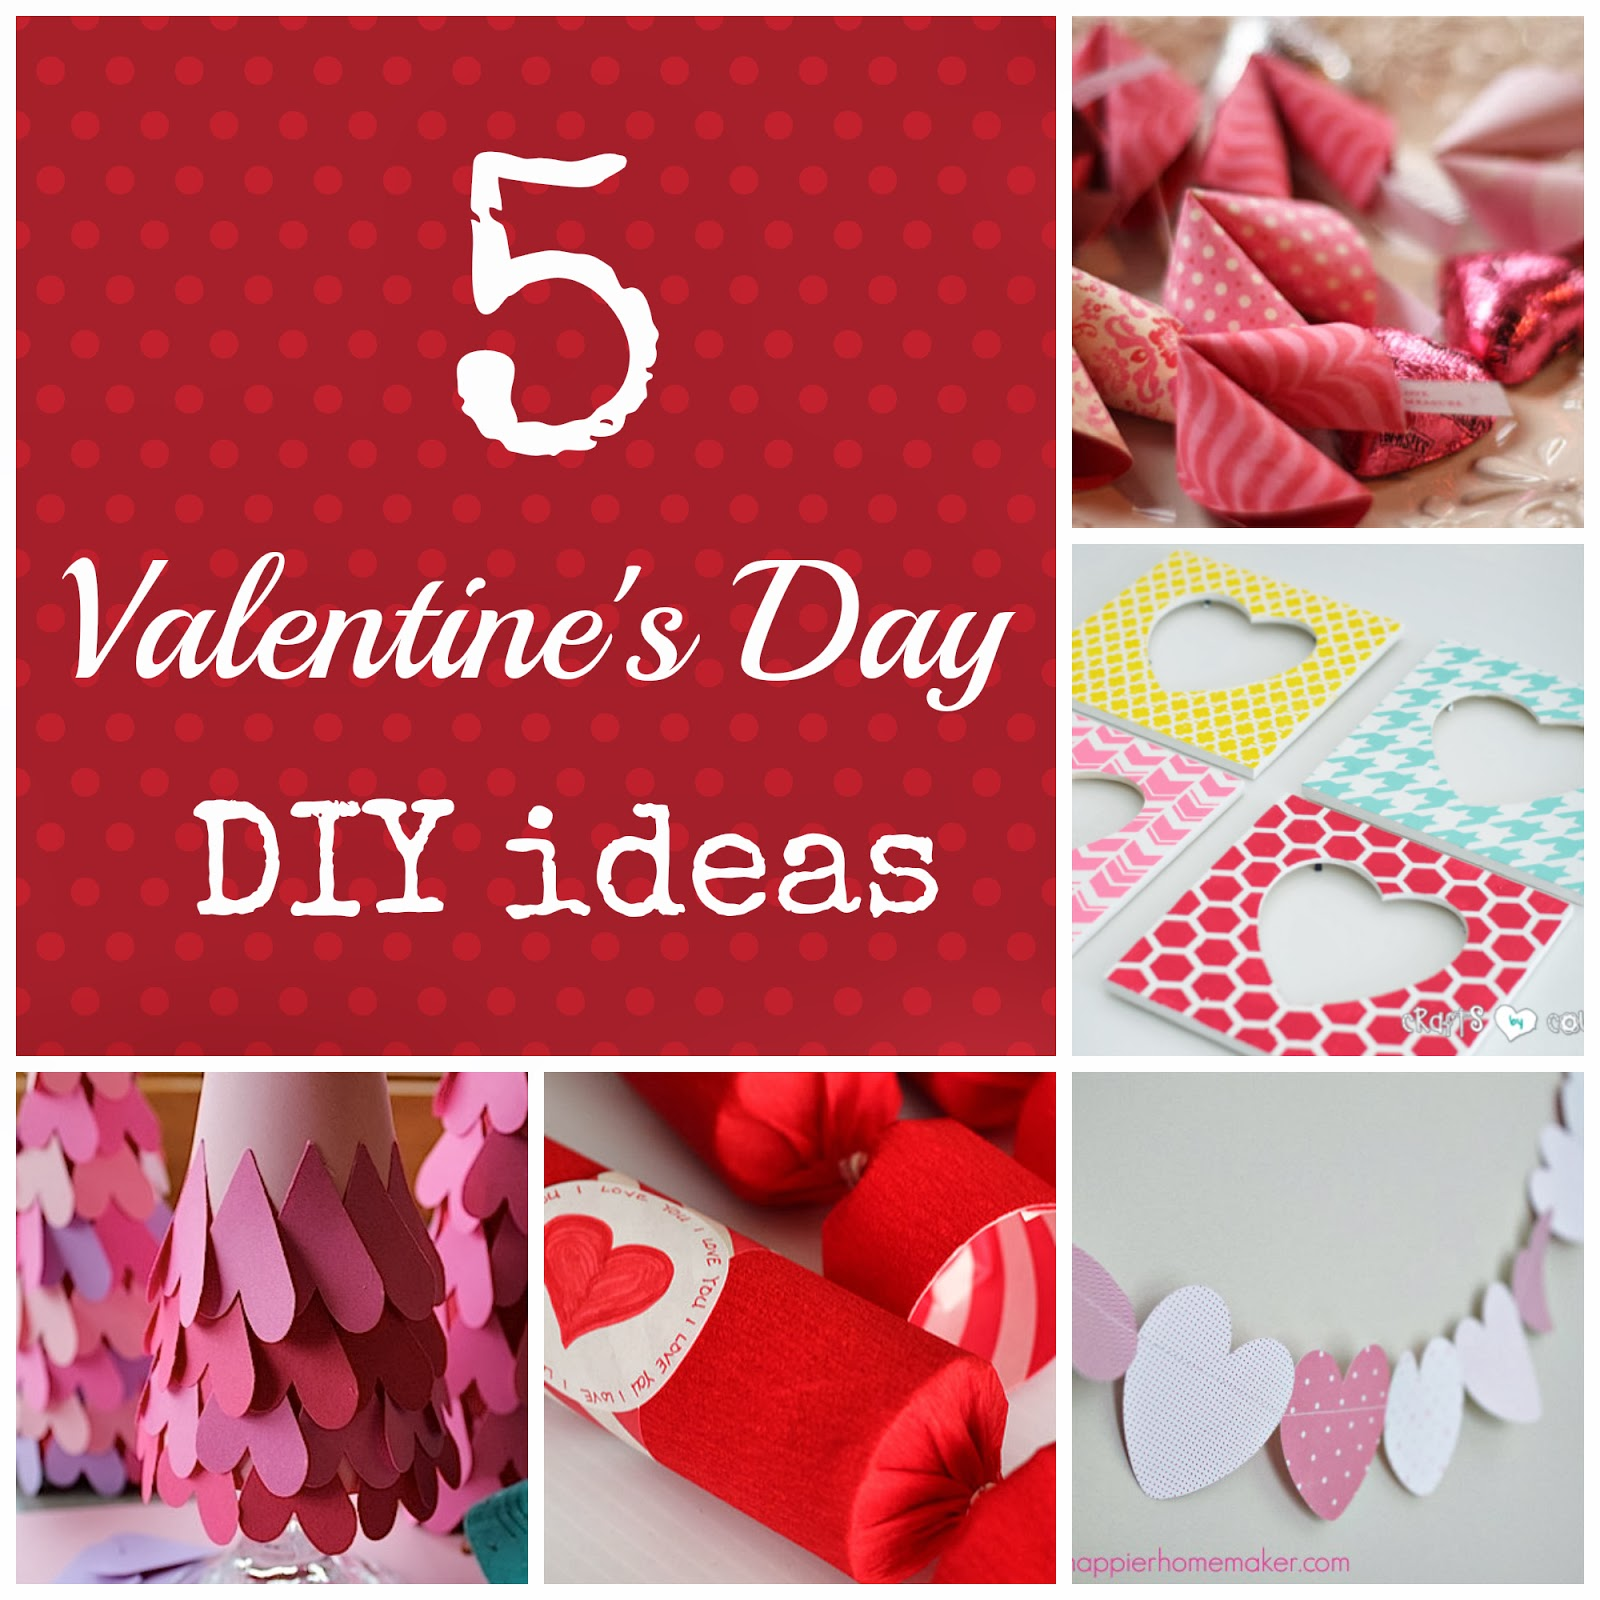 Daintybox for Valentines day ideas seattle